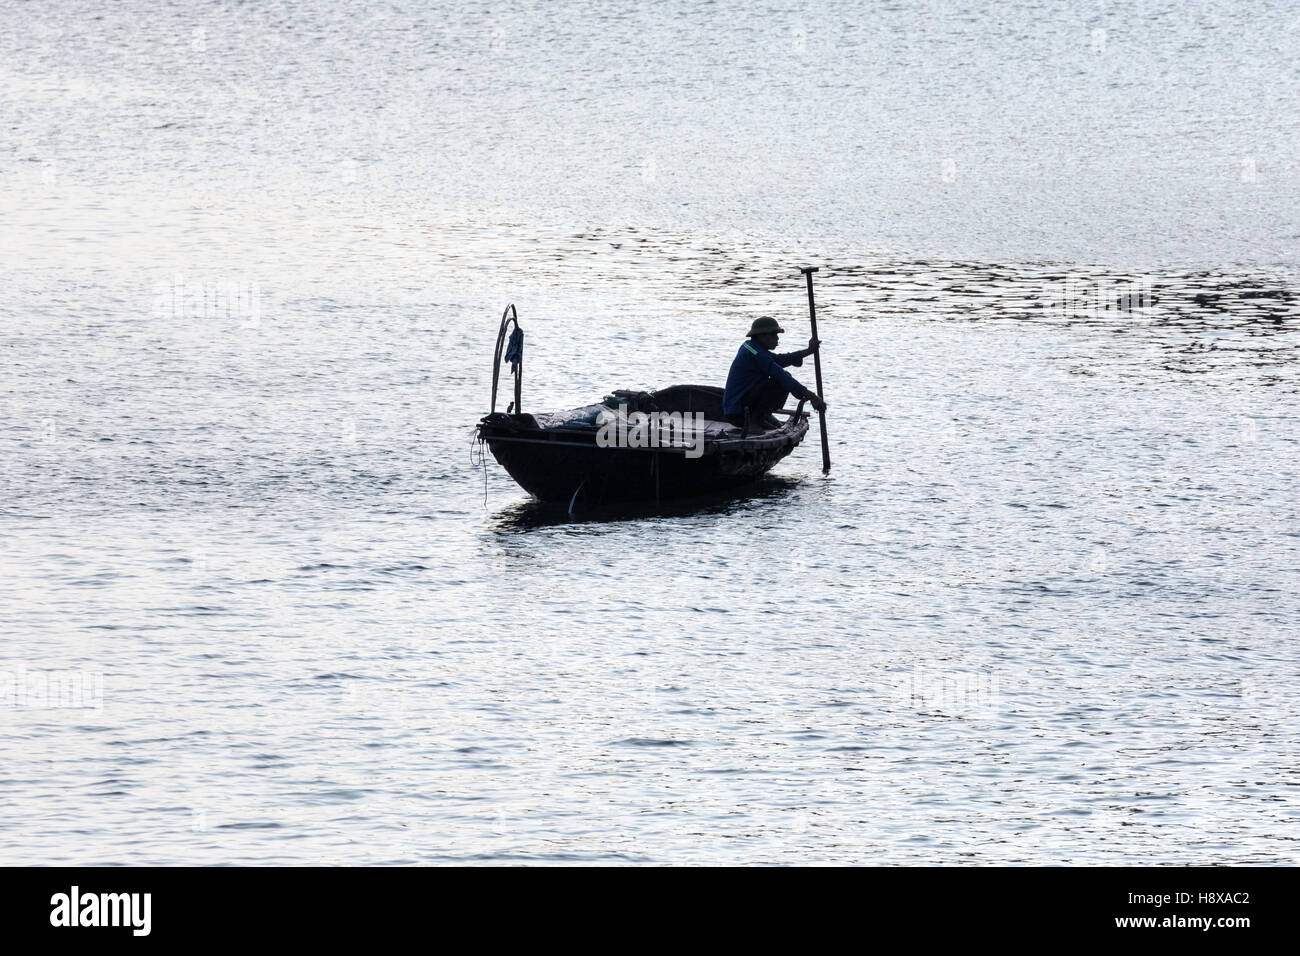 fisher man at work at Halong Bay, Vietnam, Indochina, Asia Stock Photo